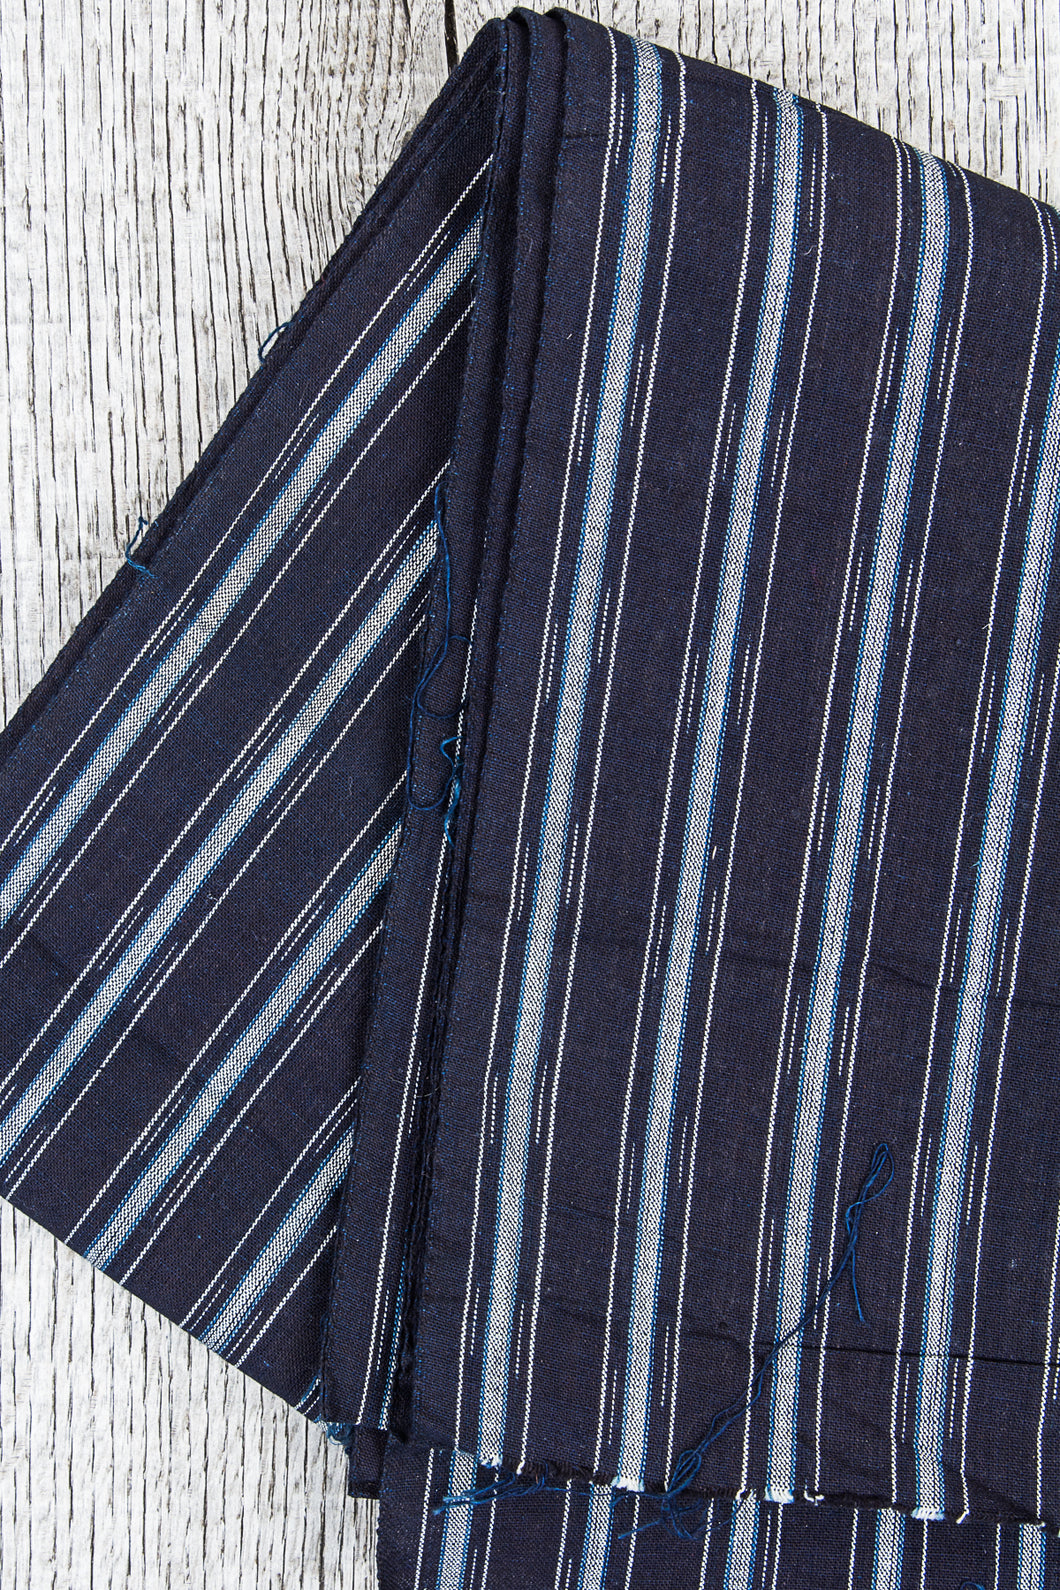 Japanese Indigo Fabric Sold by 10 Cm / 3,93 In